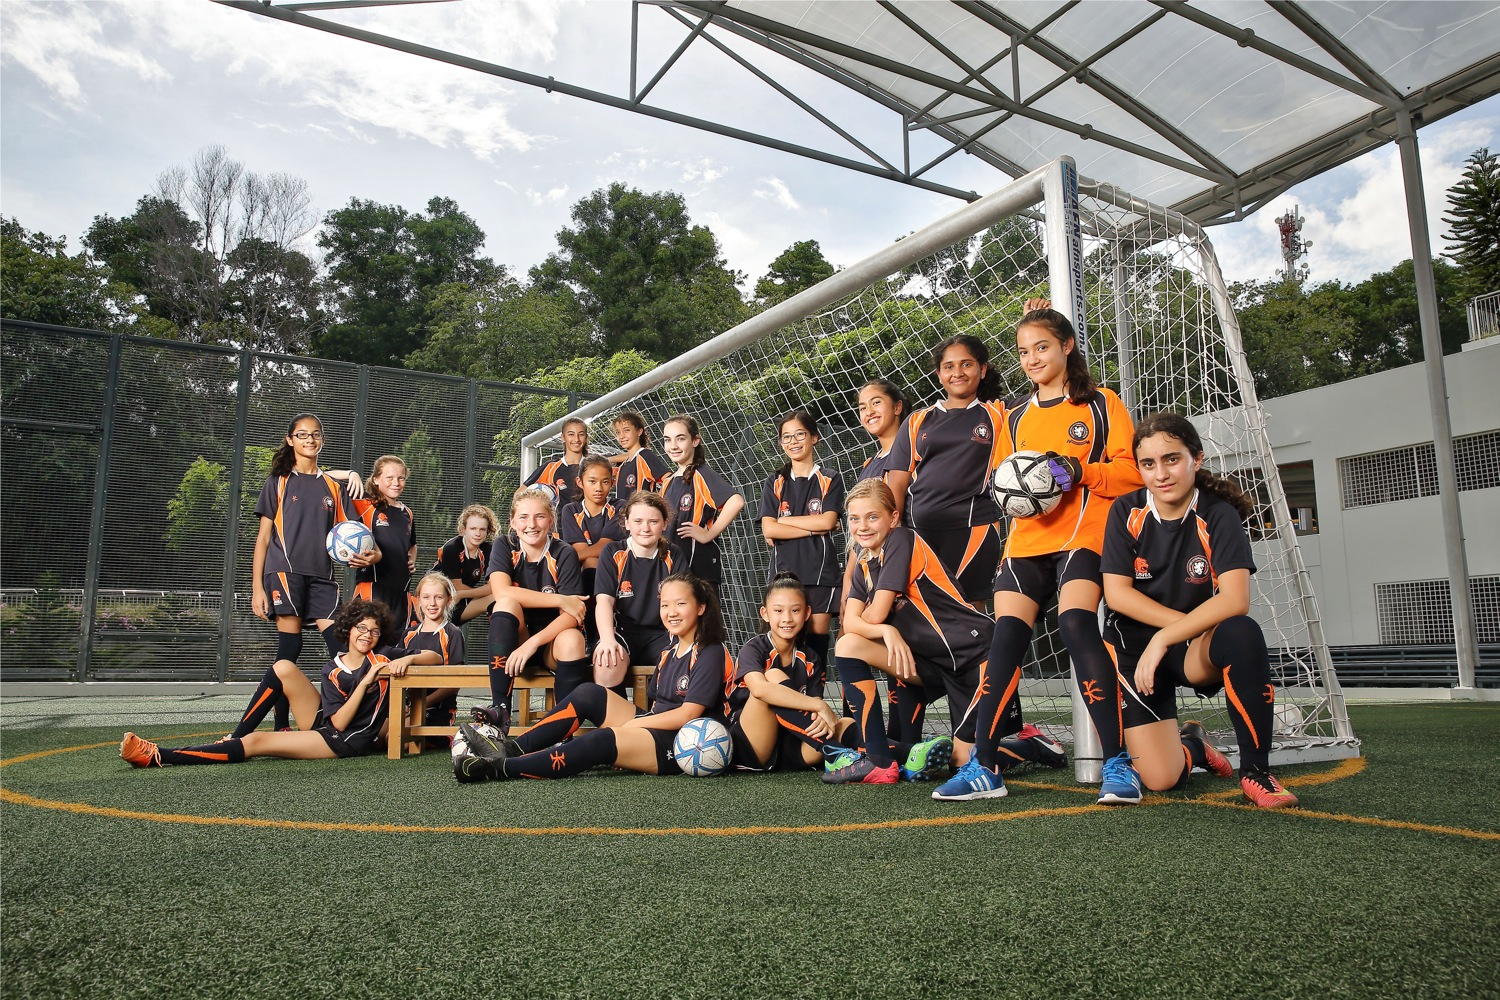 Soccer group photography of BSKL